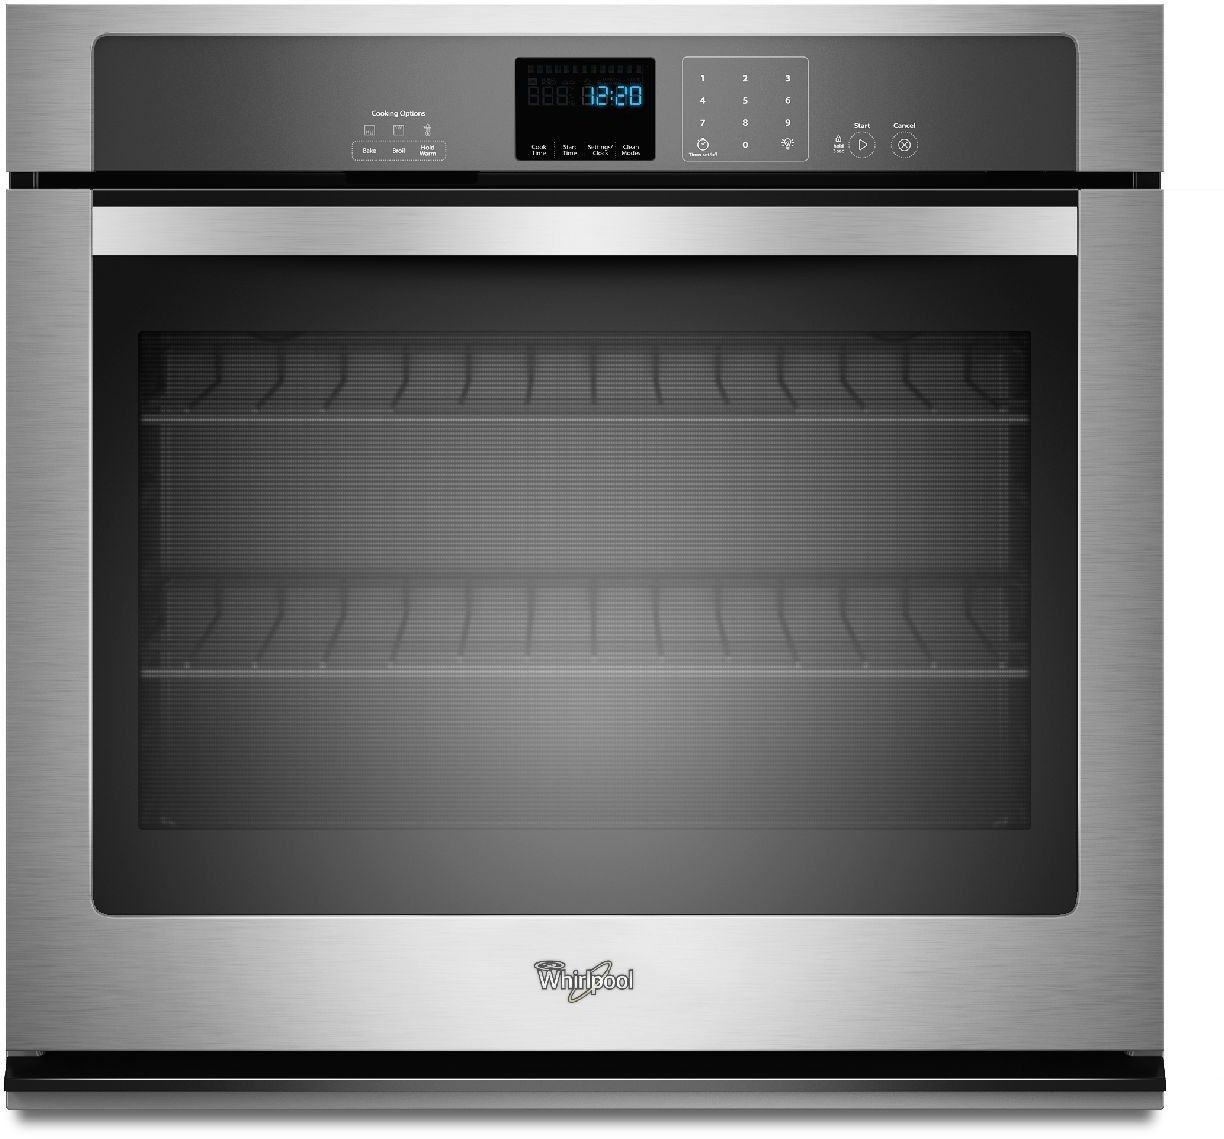 Whirlpool Wos51ec7hs 27 Inch Smart Single Oven With Touchscreen Frozen Bake Technology Temperature Sensor Multi Step Cooking Rapid Preheat Keep Warm Setti Electric Wall Oven Single Electric Wall Oven Wall Oven